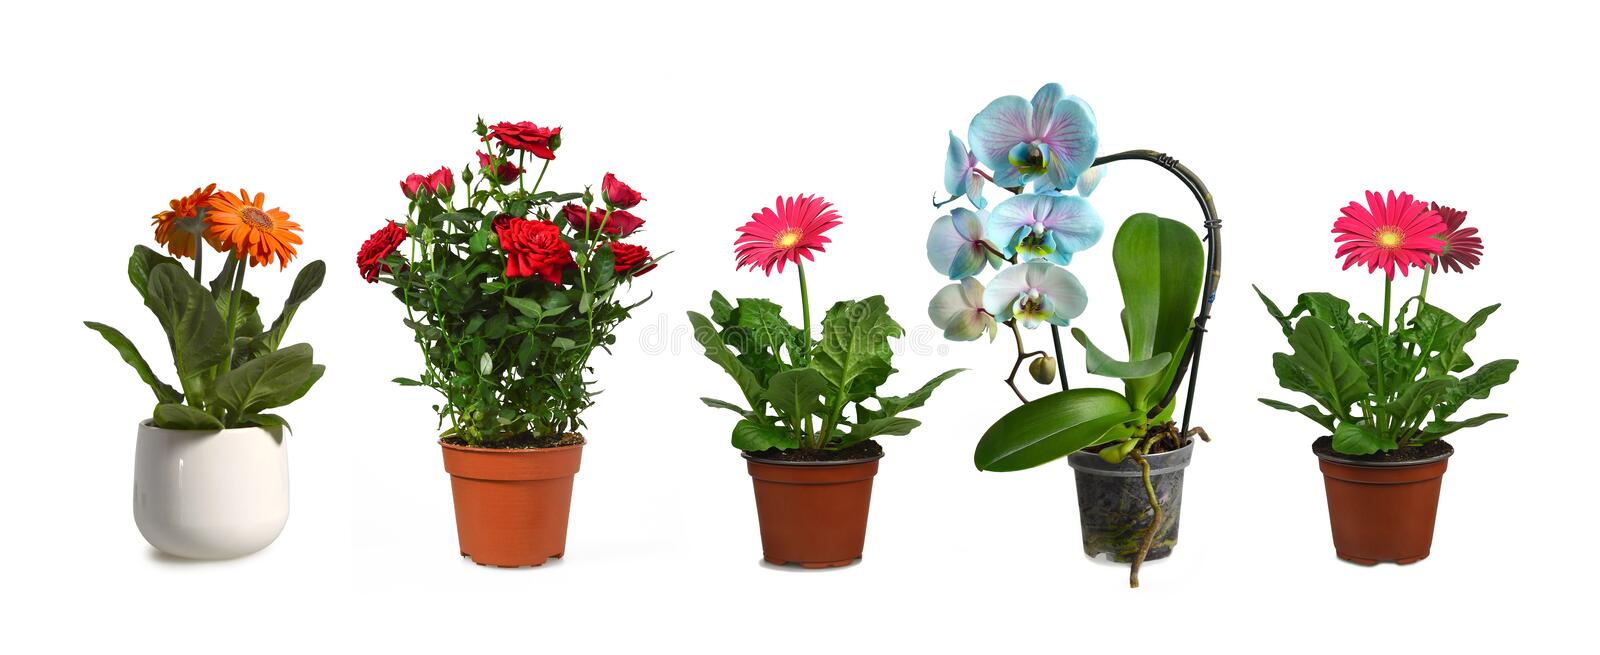 Flower plants in pots isolated on white royalty free stock photography